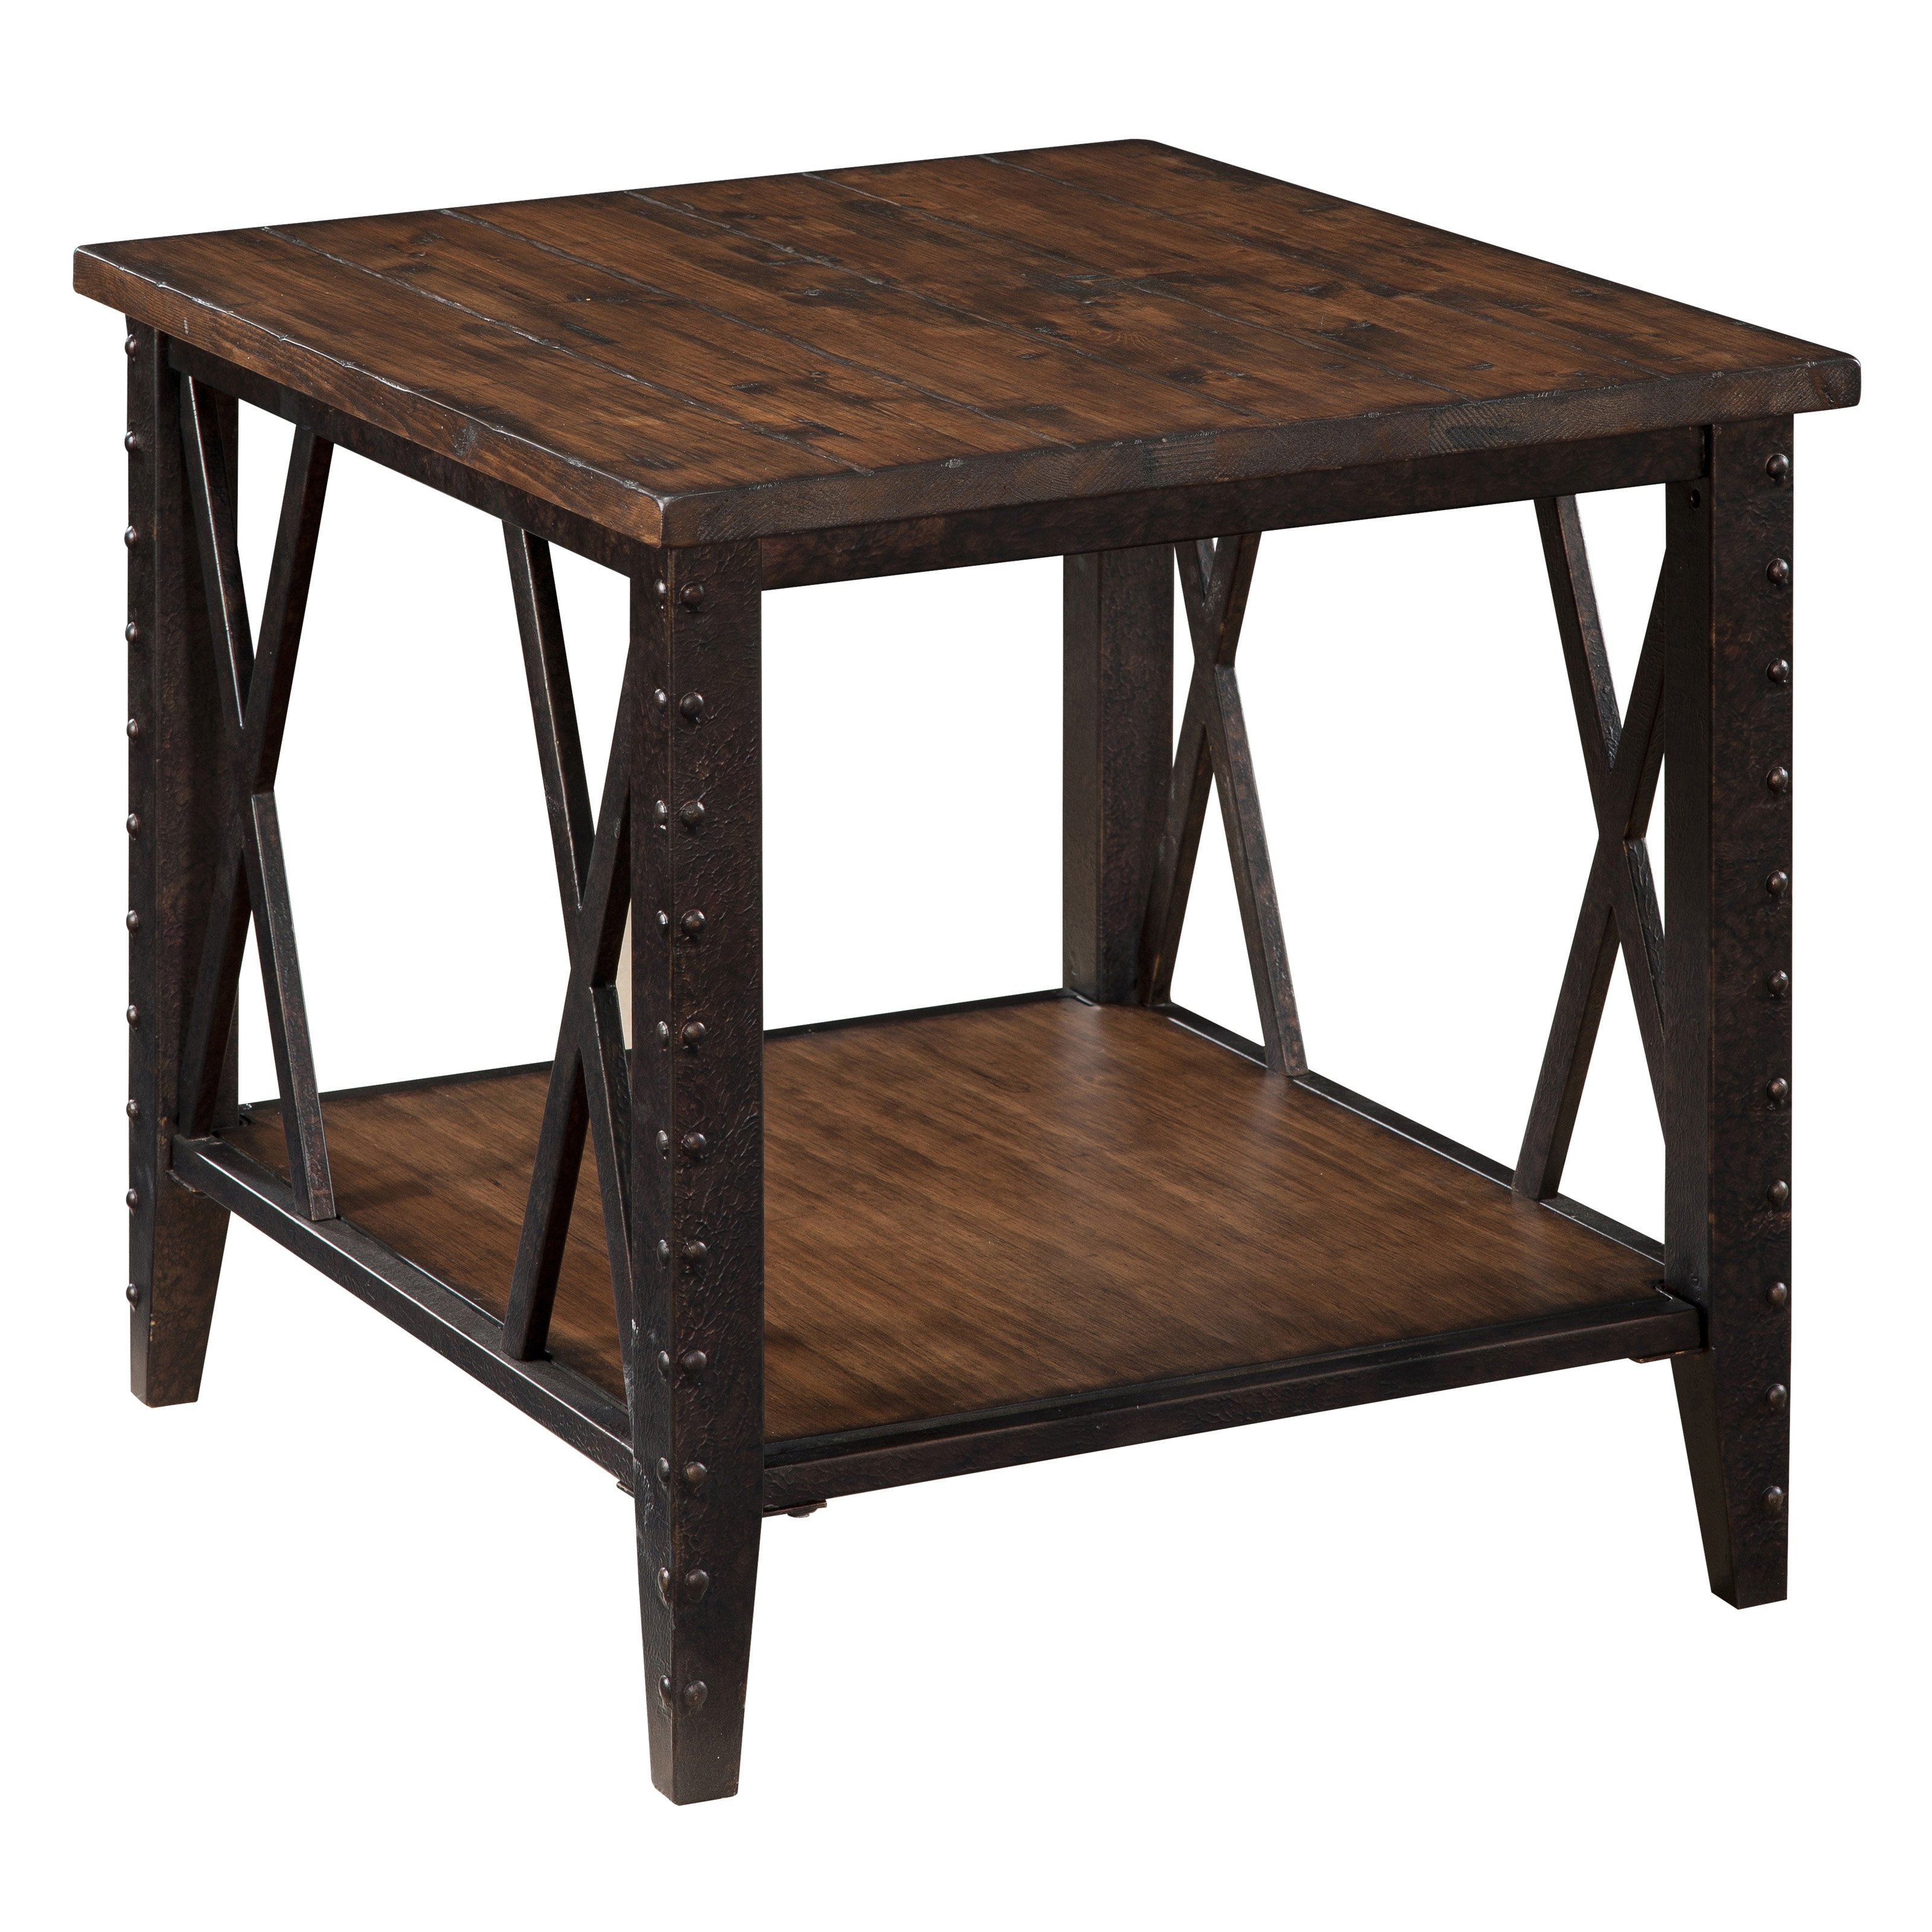 wood metal end table incredible steel and coffee tables for prepare elegant magnussen fleming rectangle rustic pine with regard threshold parquet accent mooreforcongress reclaimed